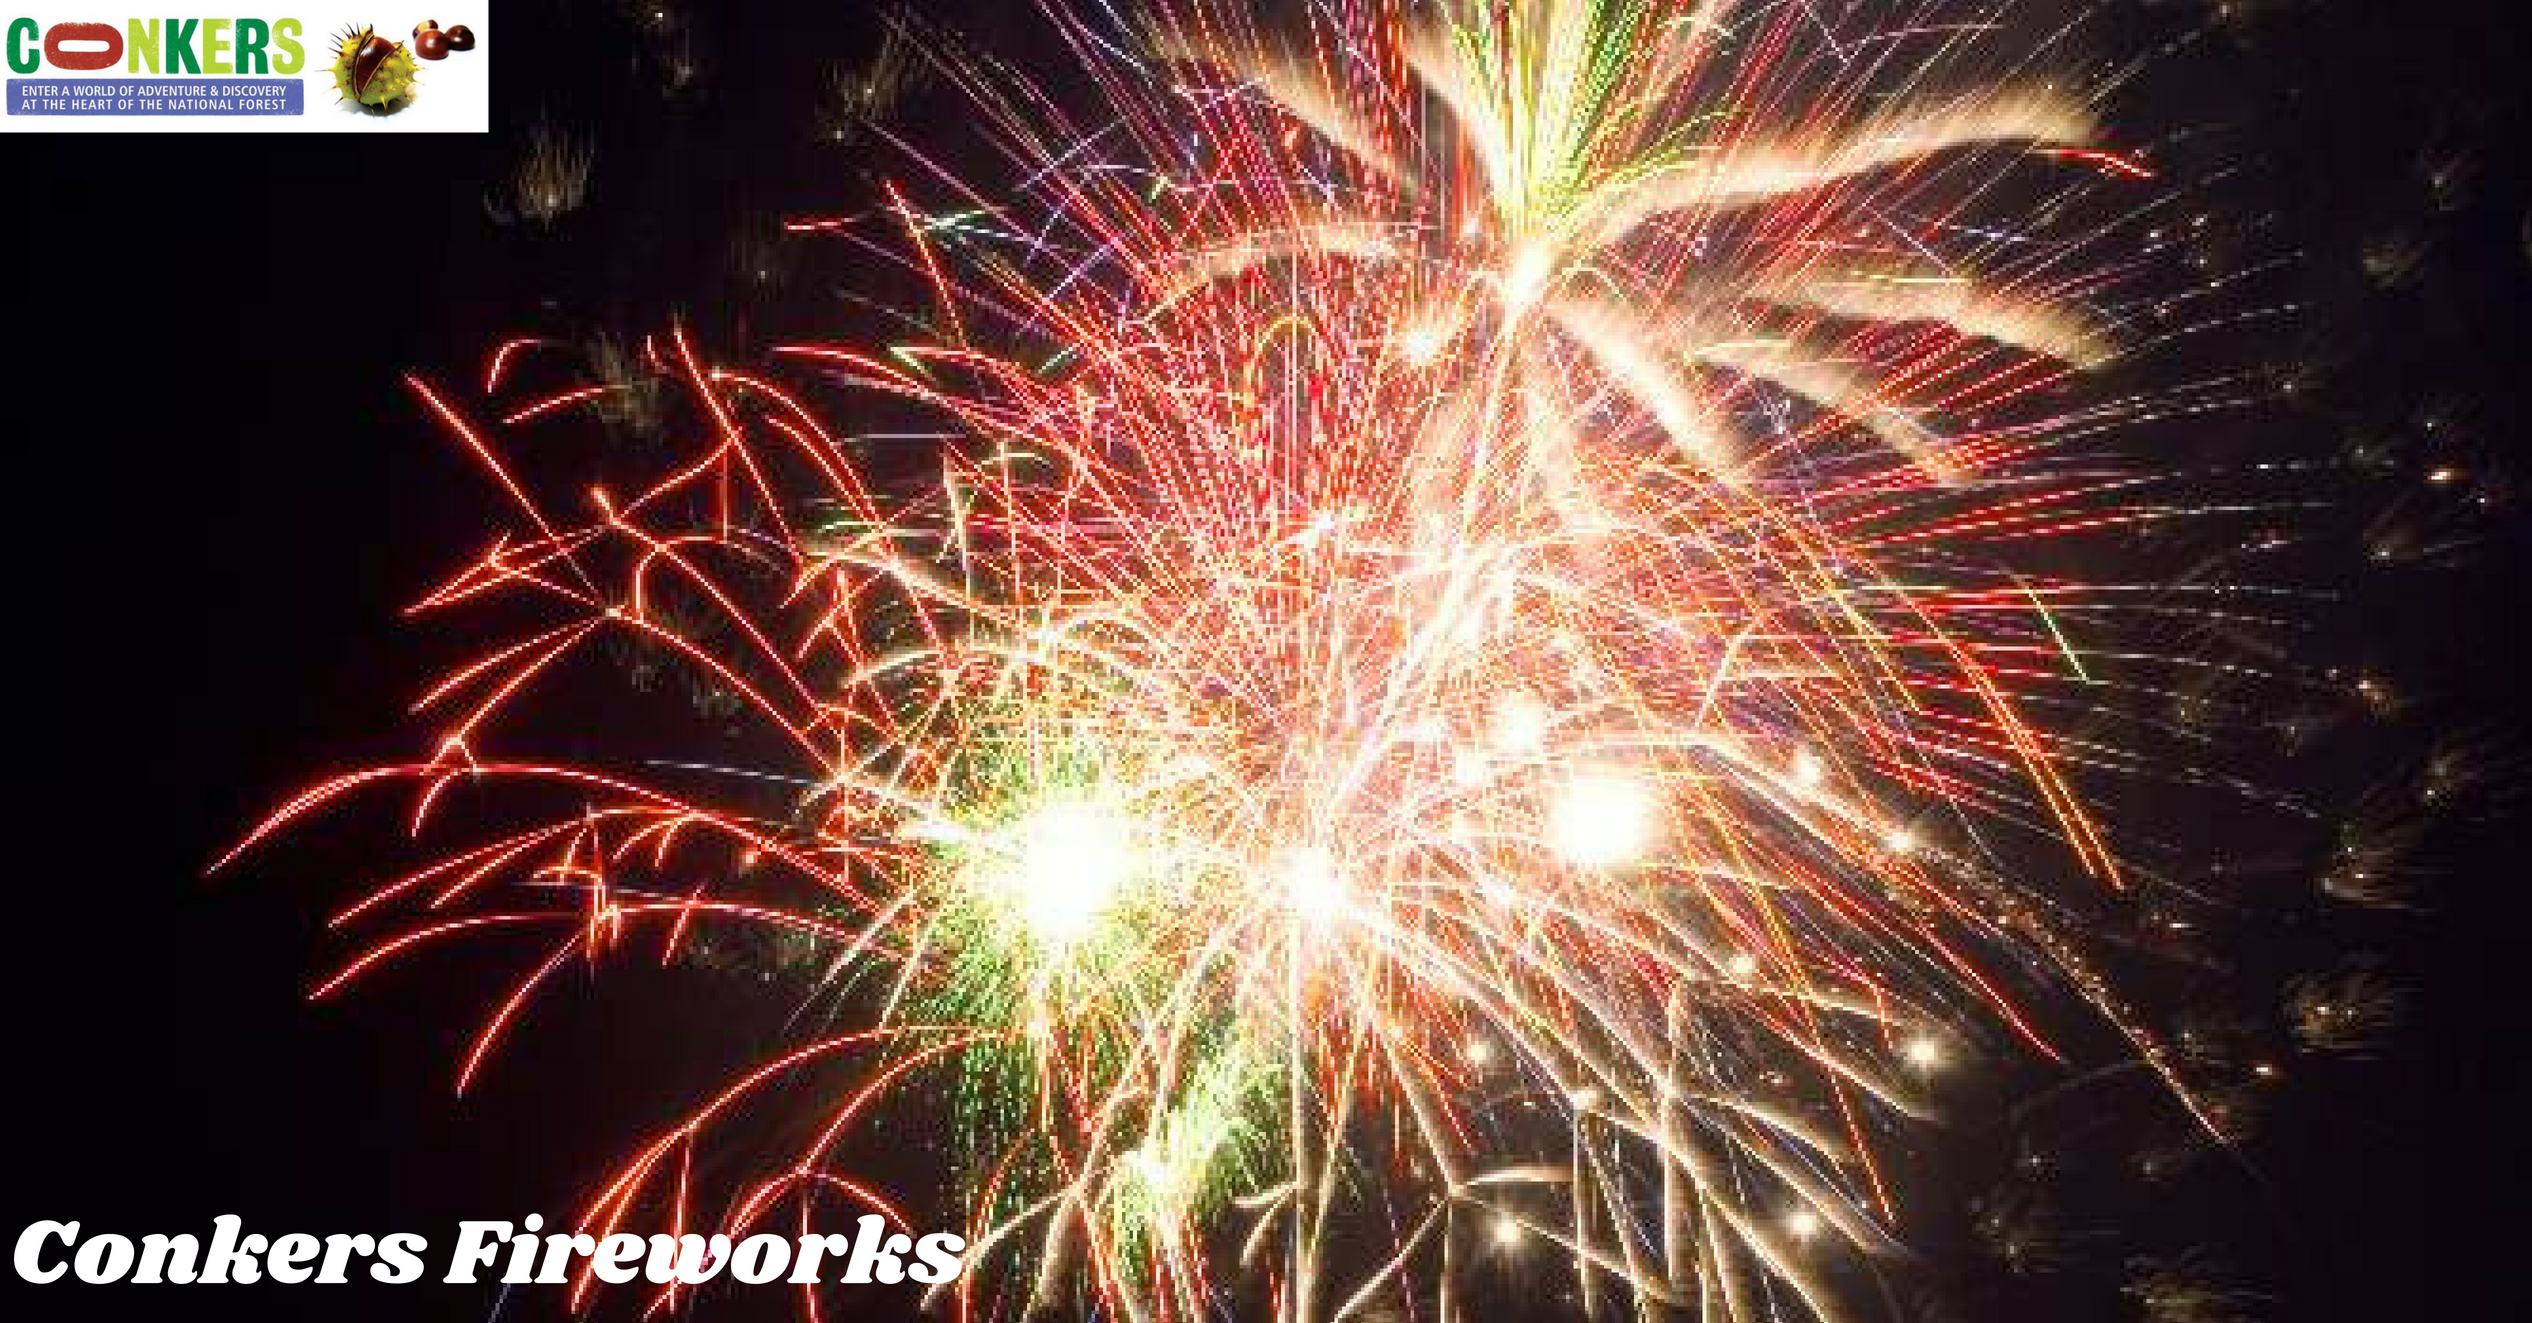 Two Nights of Fireworks Nights 3rd + 4th Nov